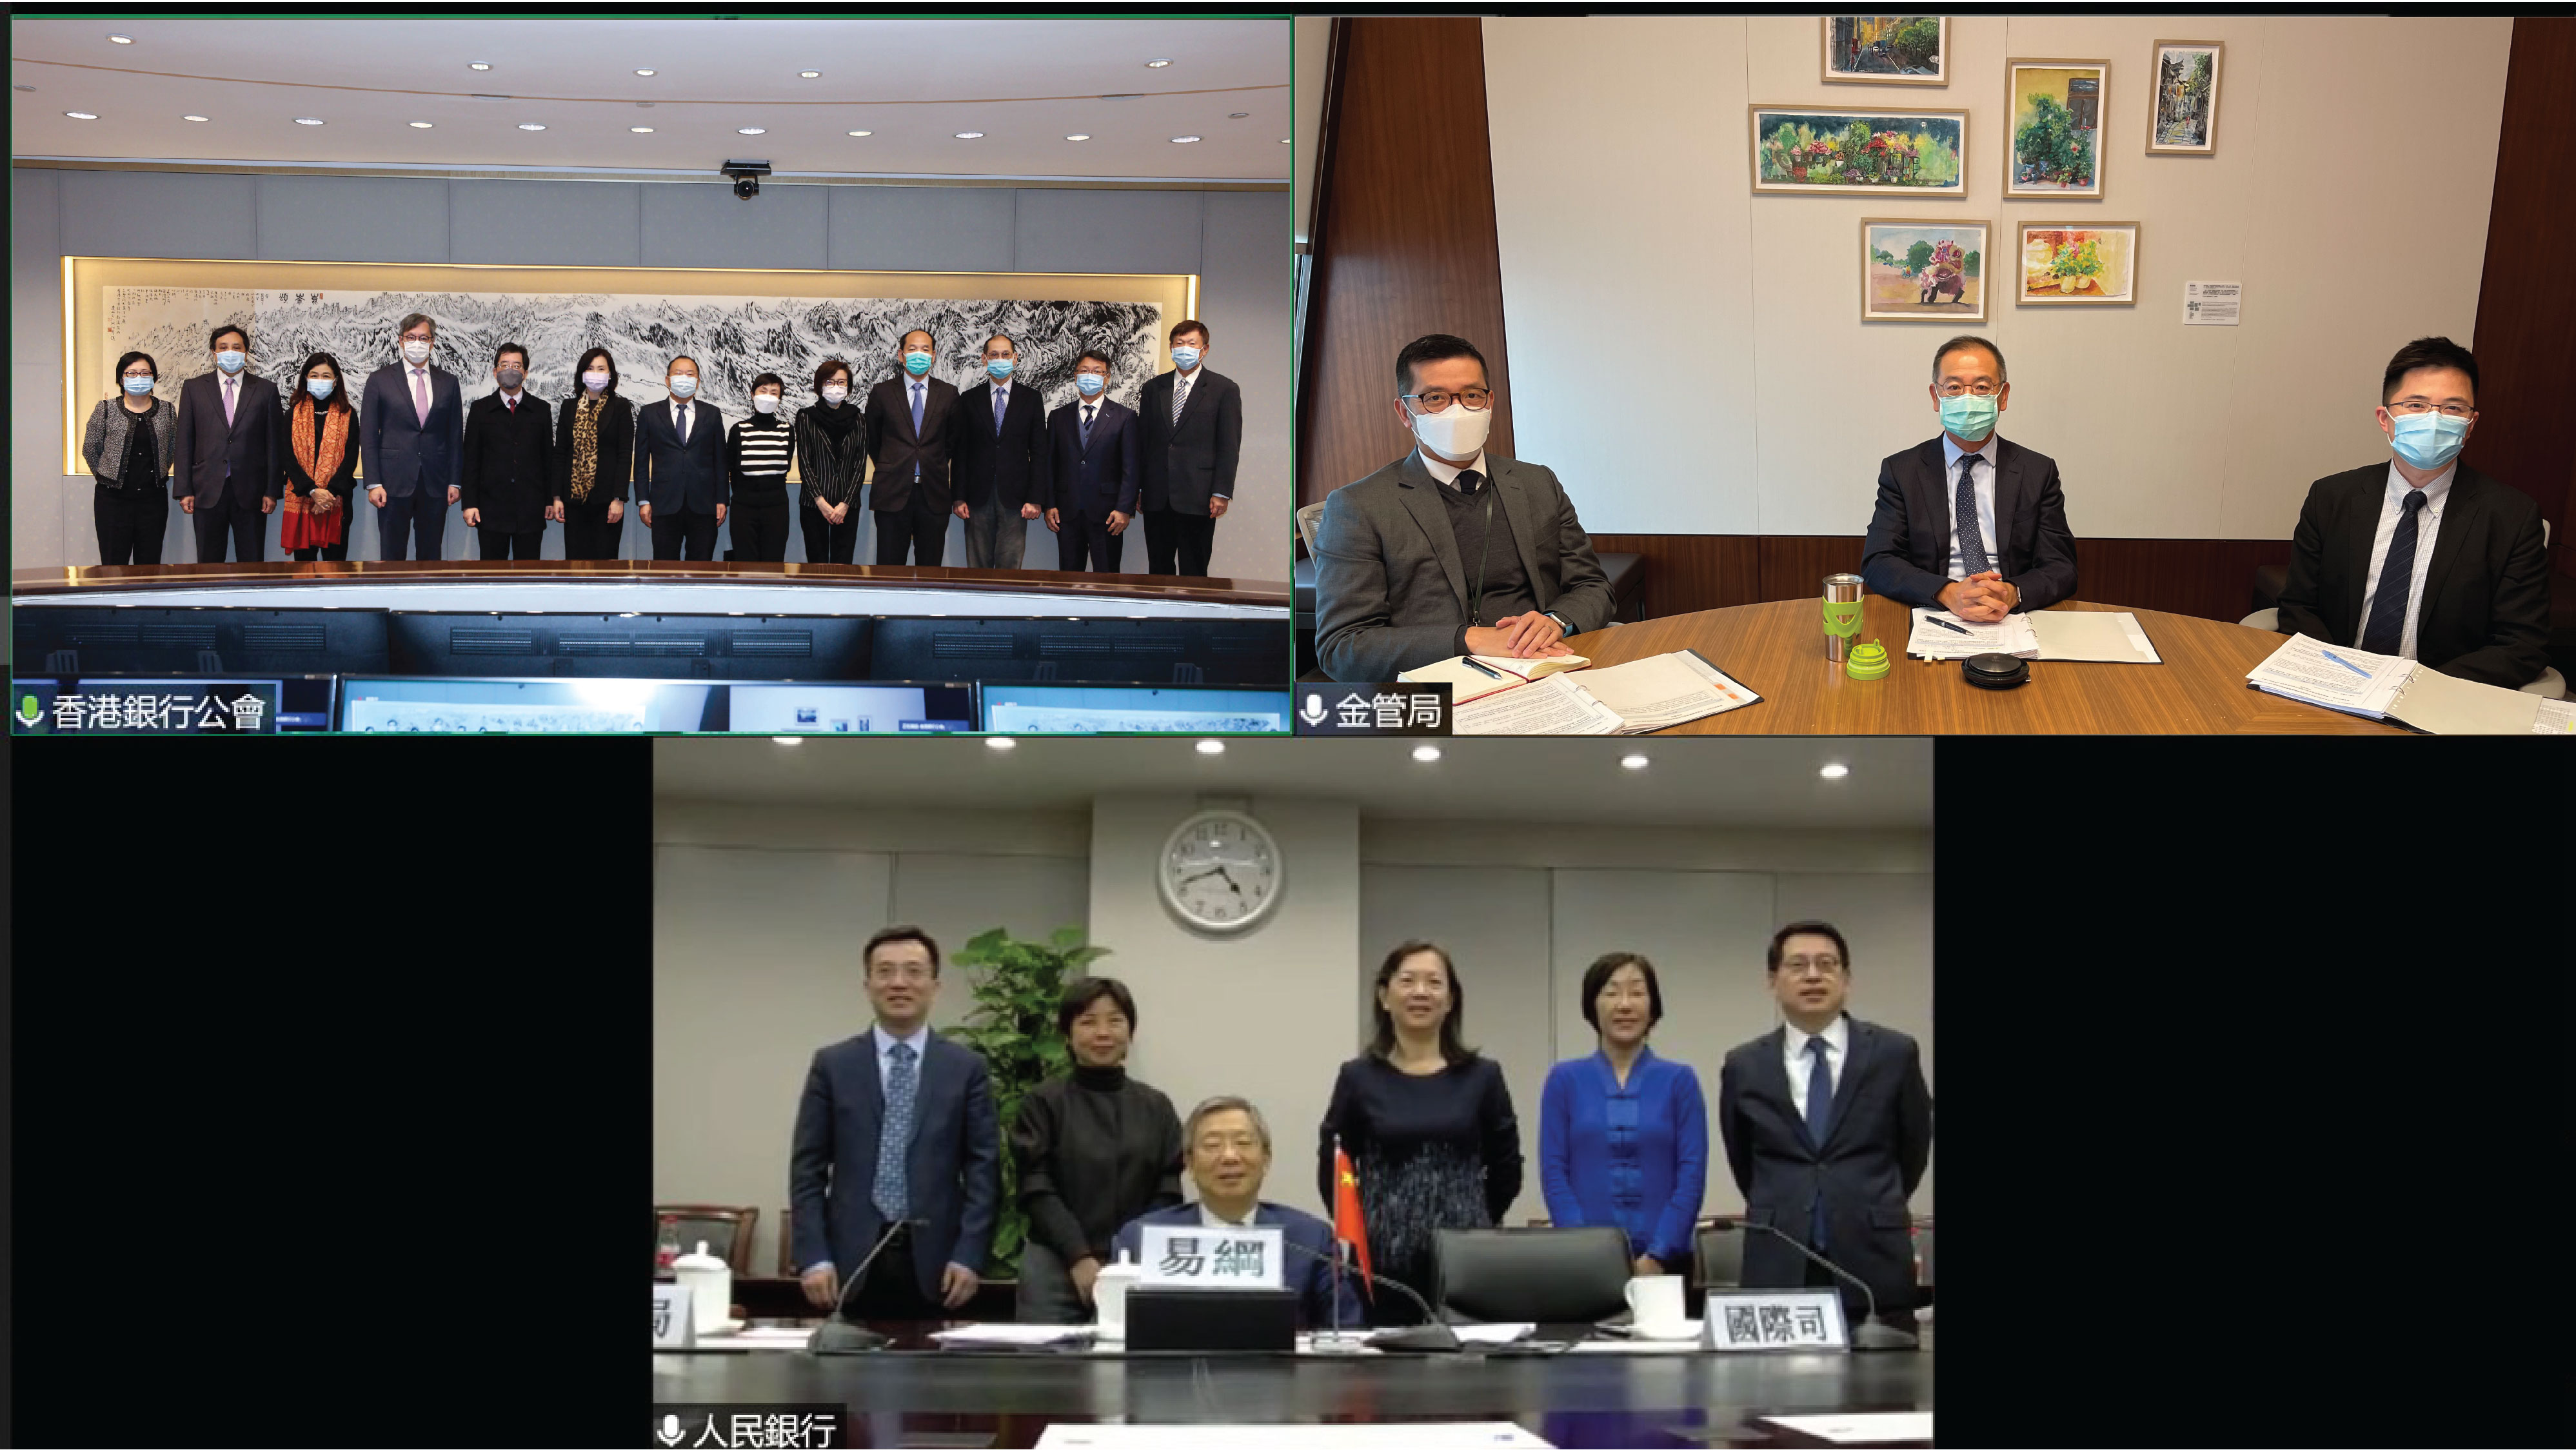 The Hong Kong Monetary Authority (HKMA) and the delegation of Hong Kong Association of Banks (HKAB) conduct annual meetings with the Mainland financial regulators via video conference to discuss different topics on financial cooperation.  Photo shows the Chief Executive of the HKMA, Eddie Yue (second from left in the top right photo), Governor of the People's Bank of China, Yi Gang (third from left in the bottom photo) and Chairperson of the HKAB, Zhuo Chengwen (seventh from left in the top left photo) having an online meeting.